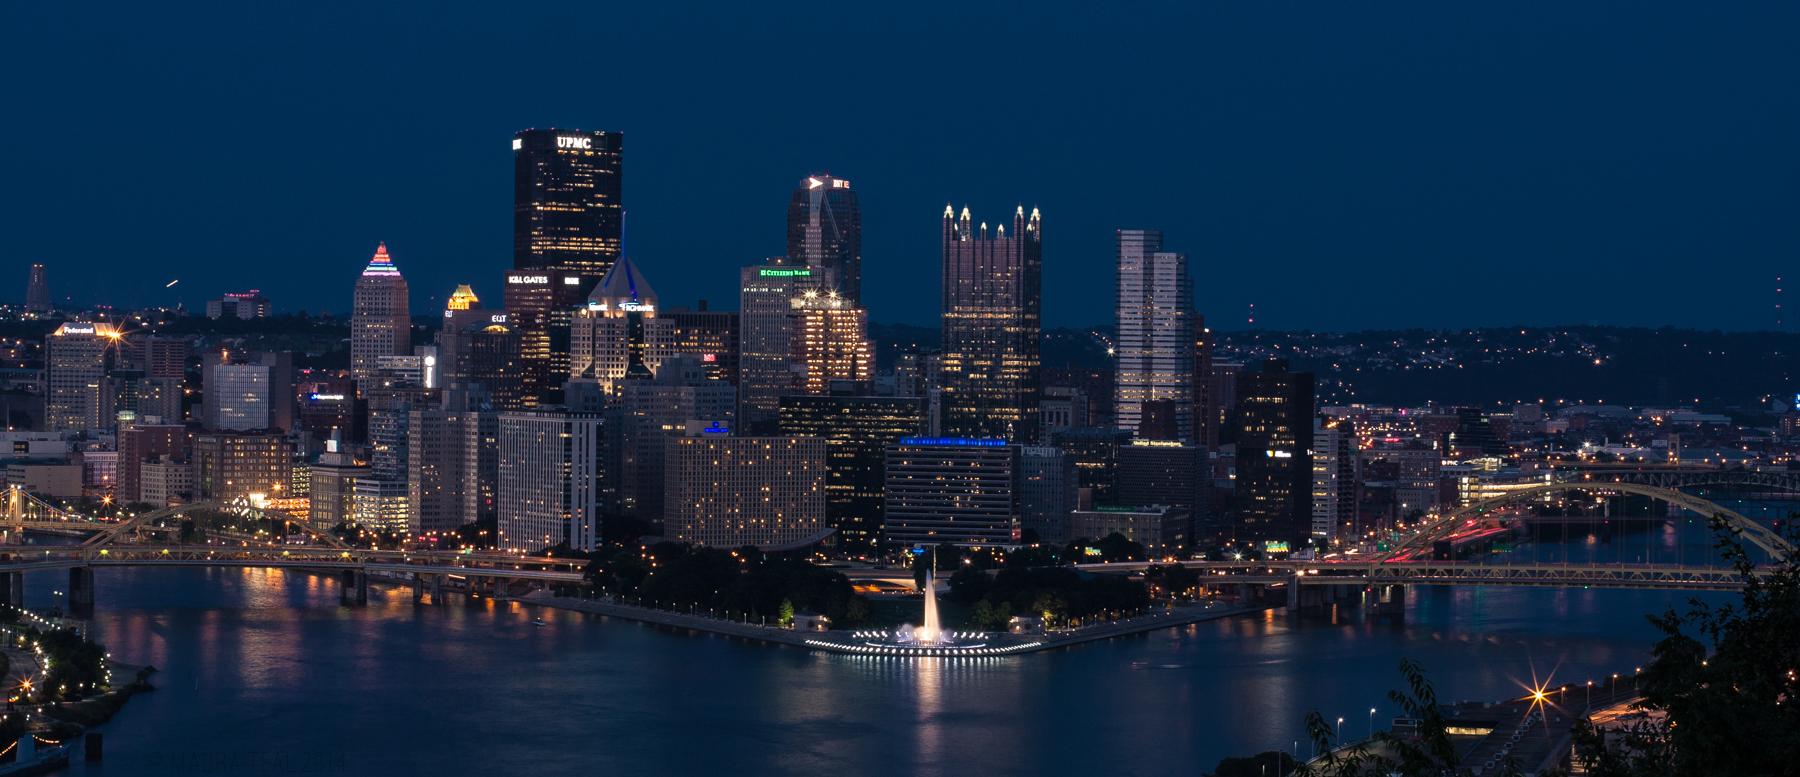 One of my favorites of the year, the city of Pittsburgh at night